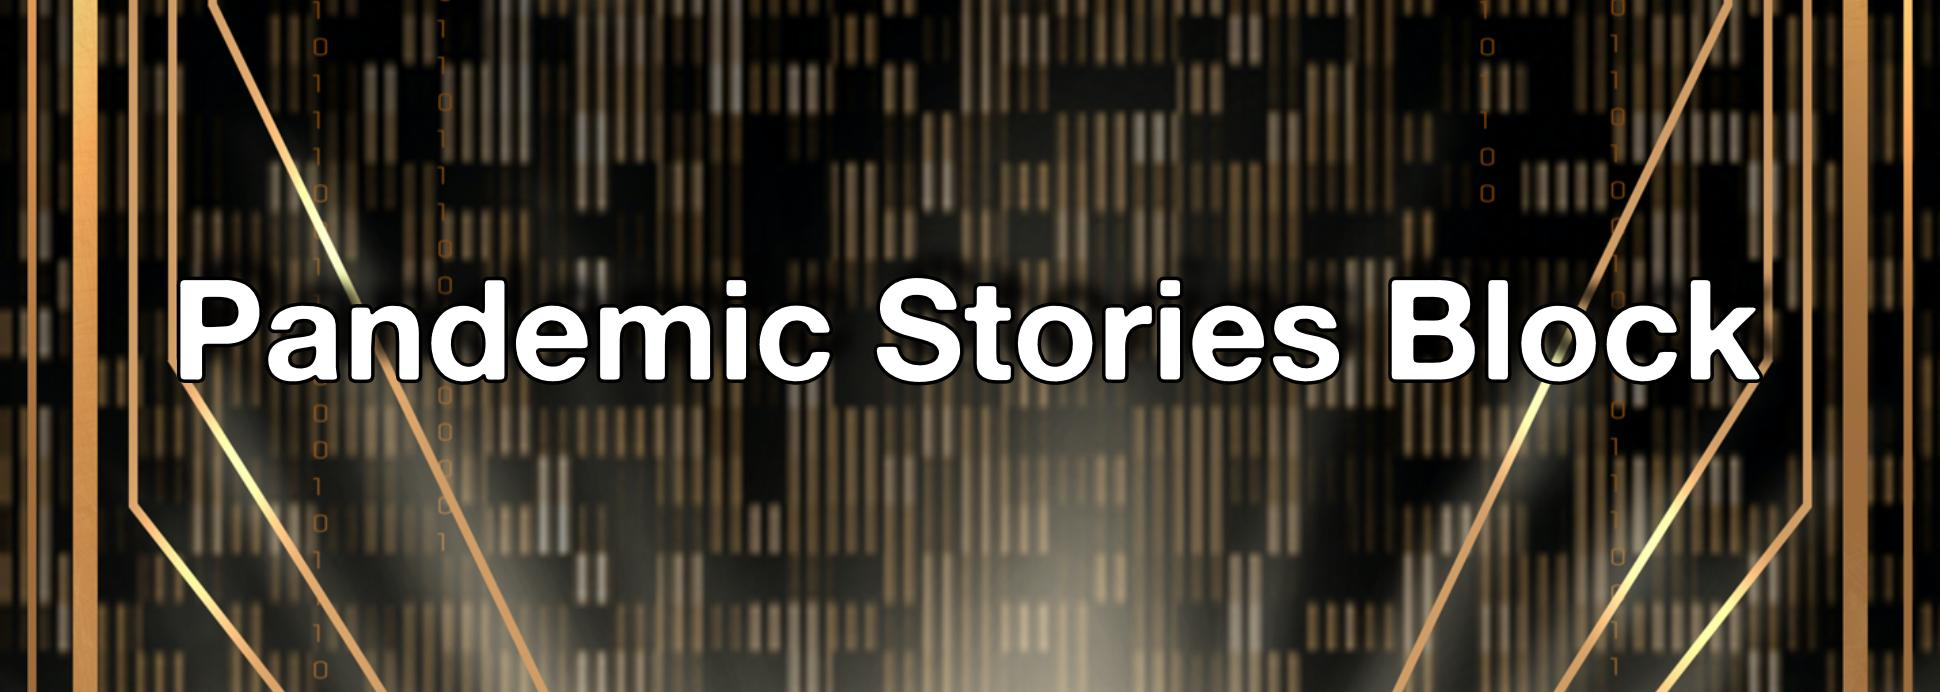 Pandemic Stories Block